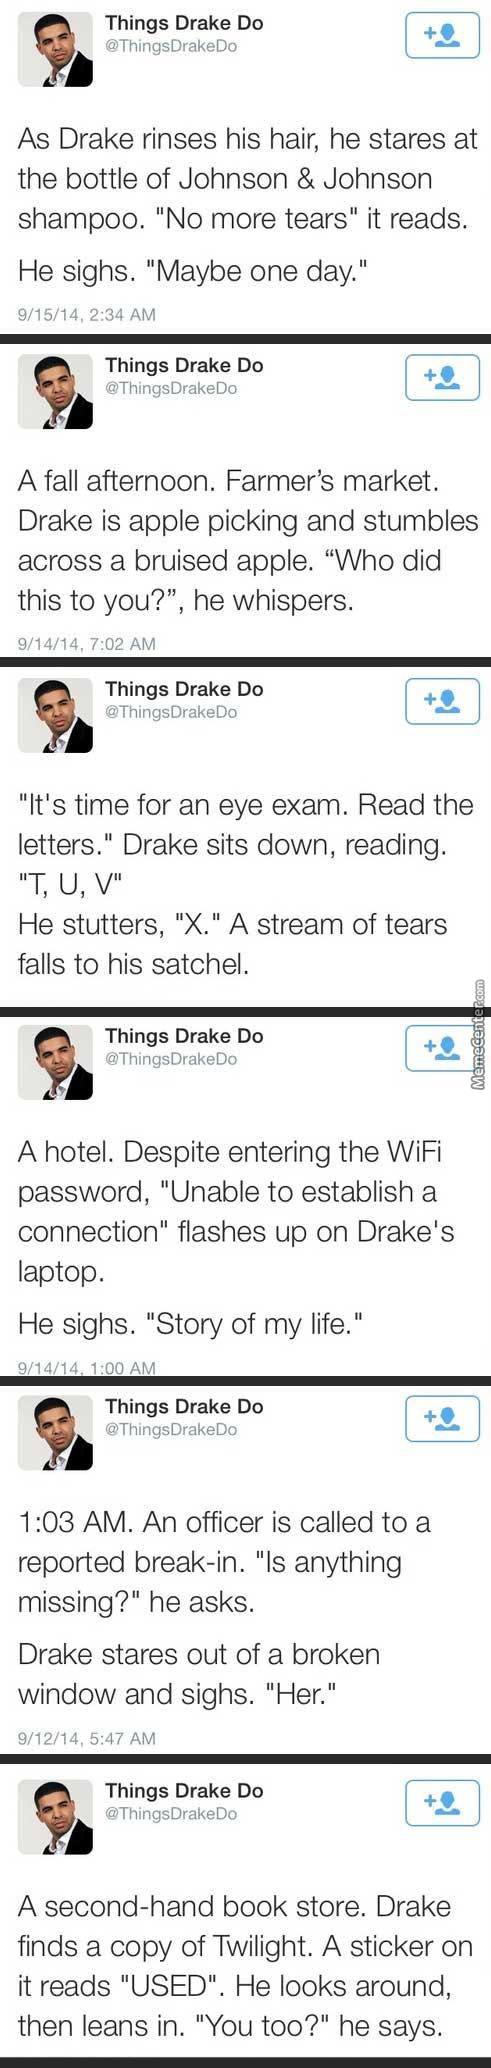 Things Drake Do...